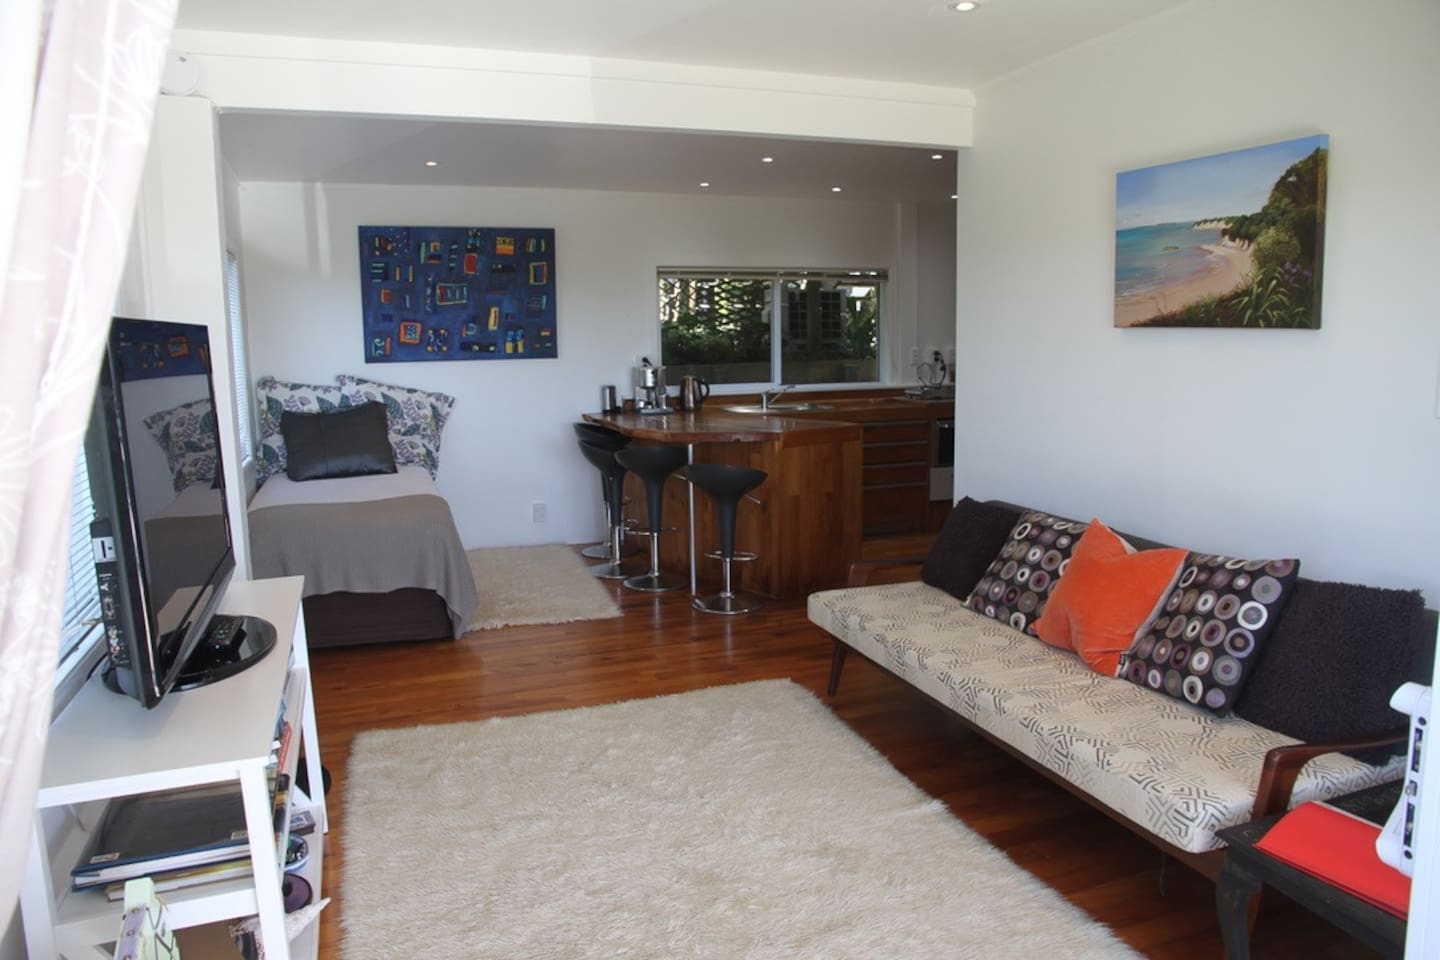 Open plan living area looks out to the sea. Showing breakfast bar, single bed and sofa bed.